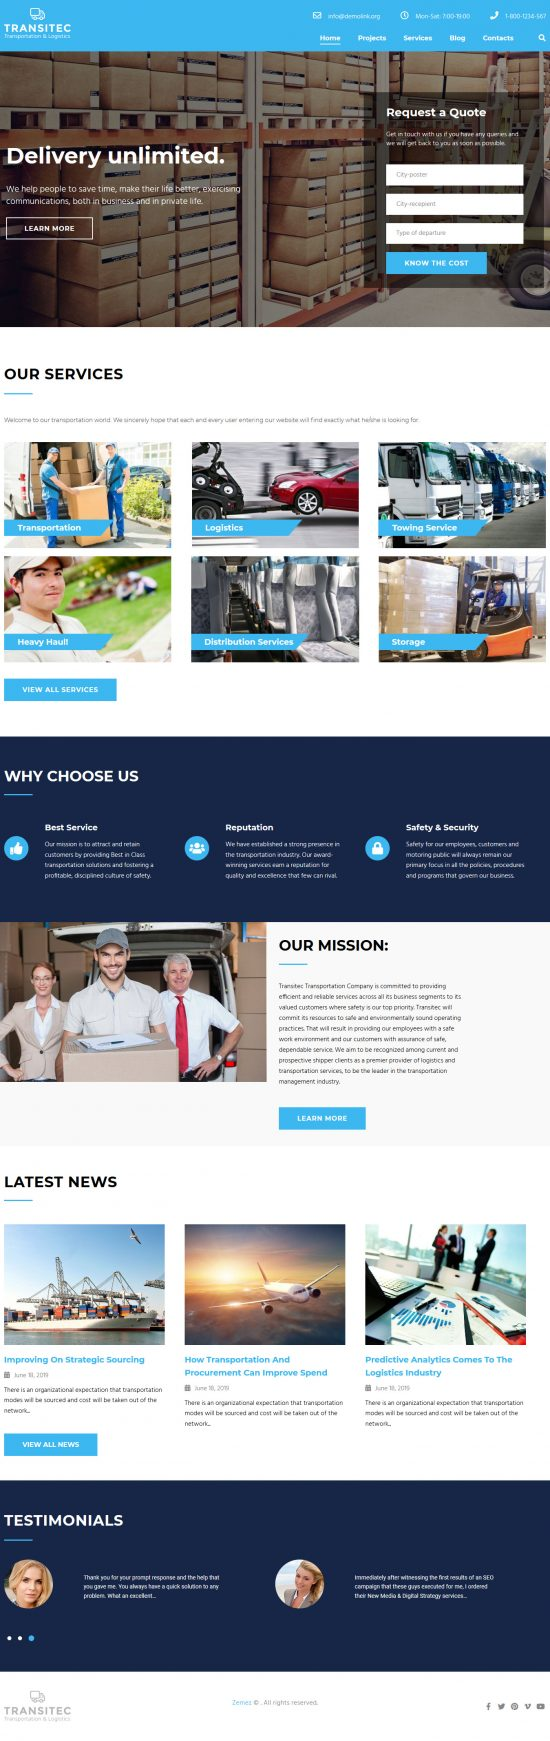 transitec wordpress theme 01 550x1741 - Transitec WordPress Theme